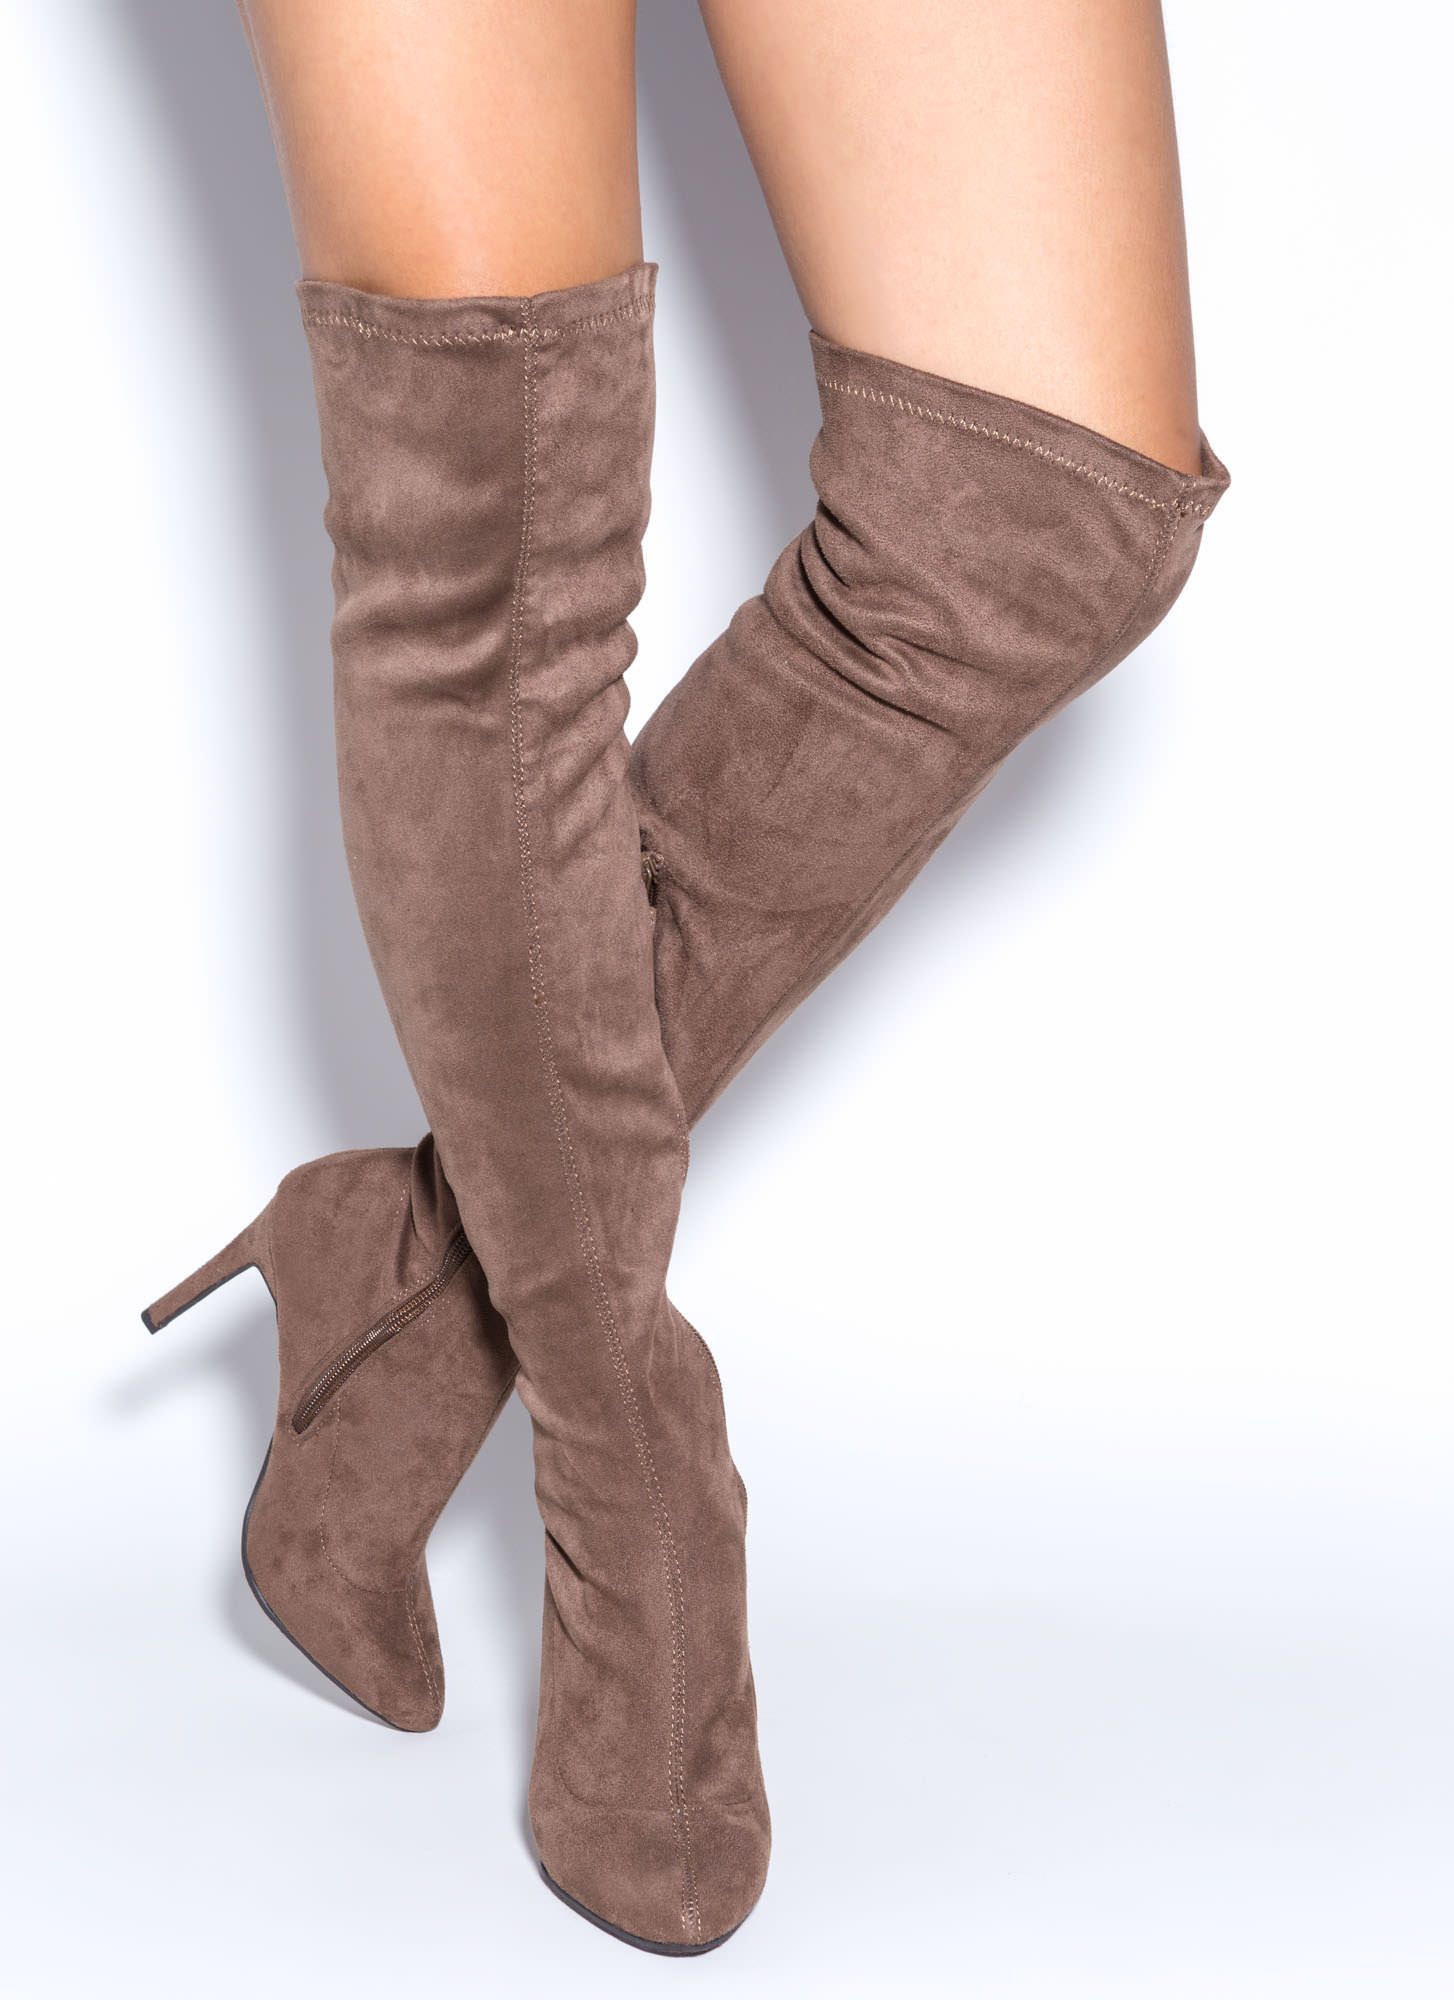 Trip Over-The-Knee Boots TAUPE TAN - GoJane.com